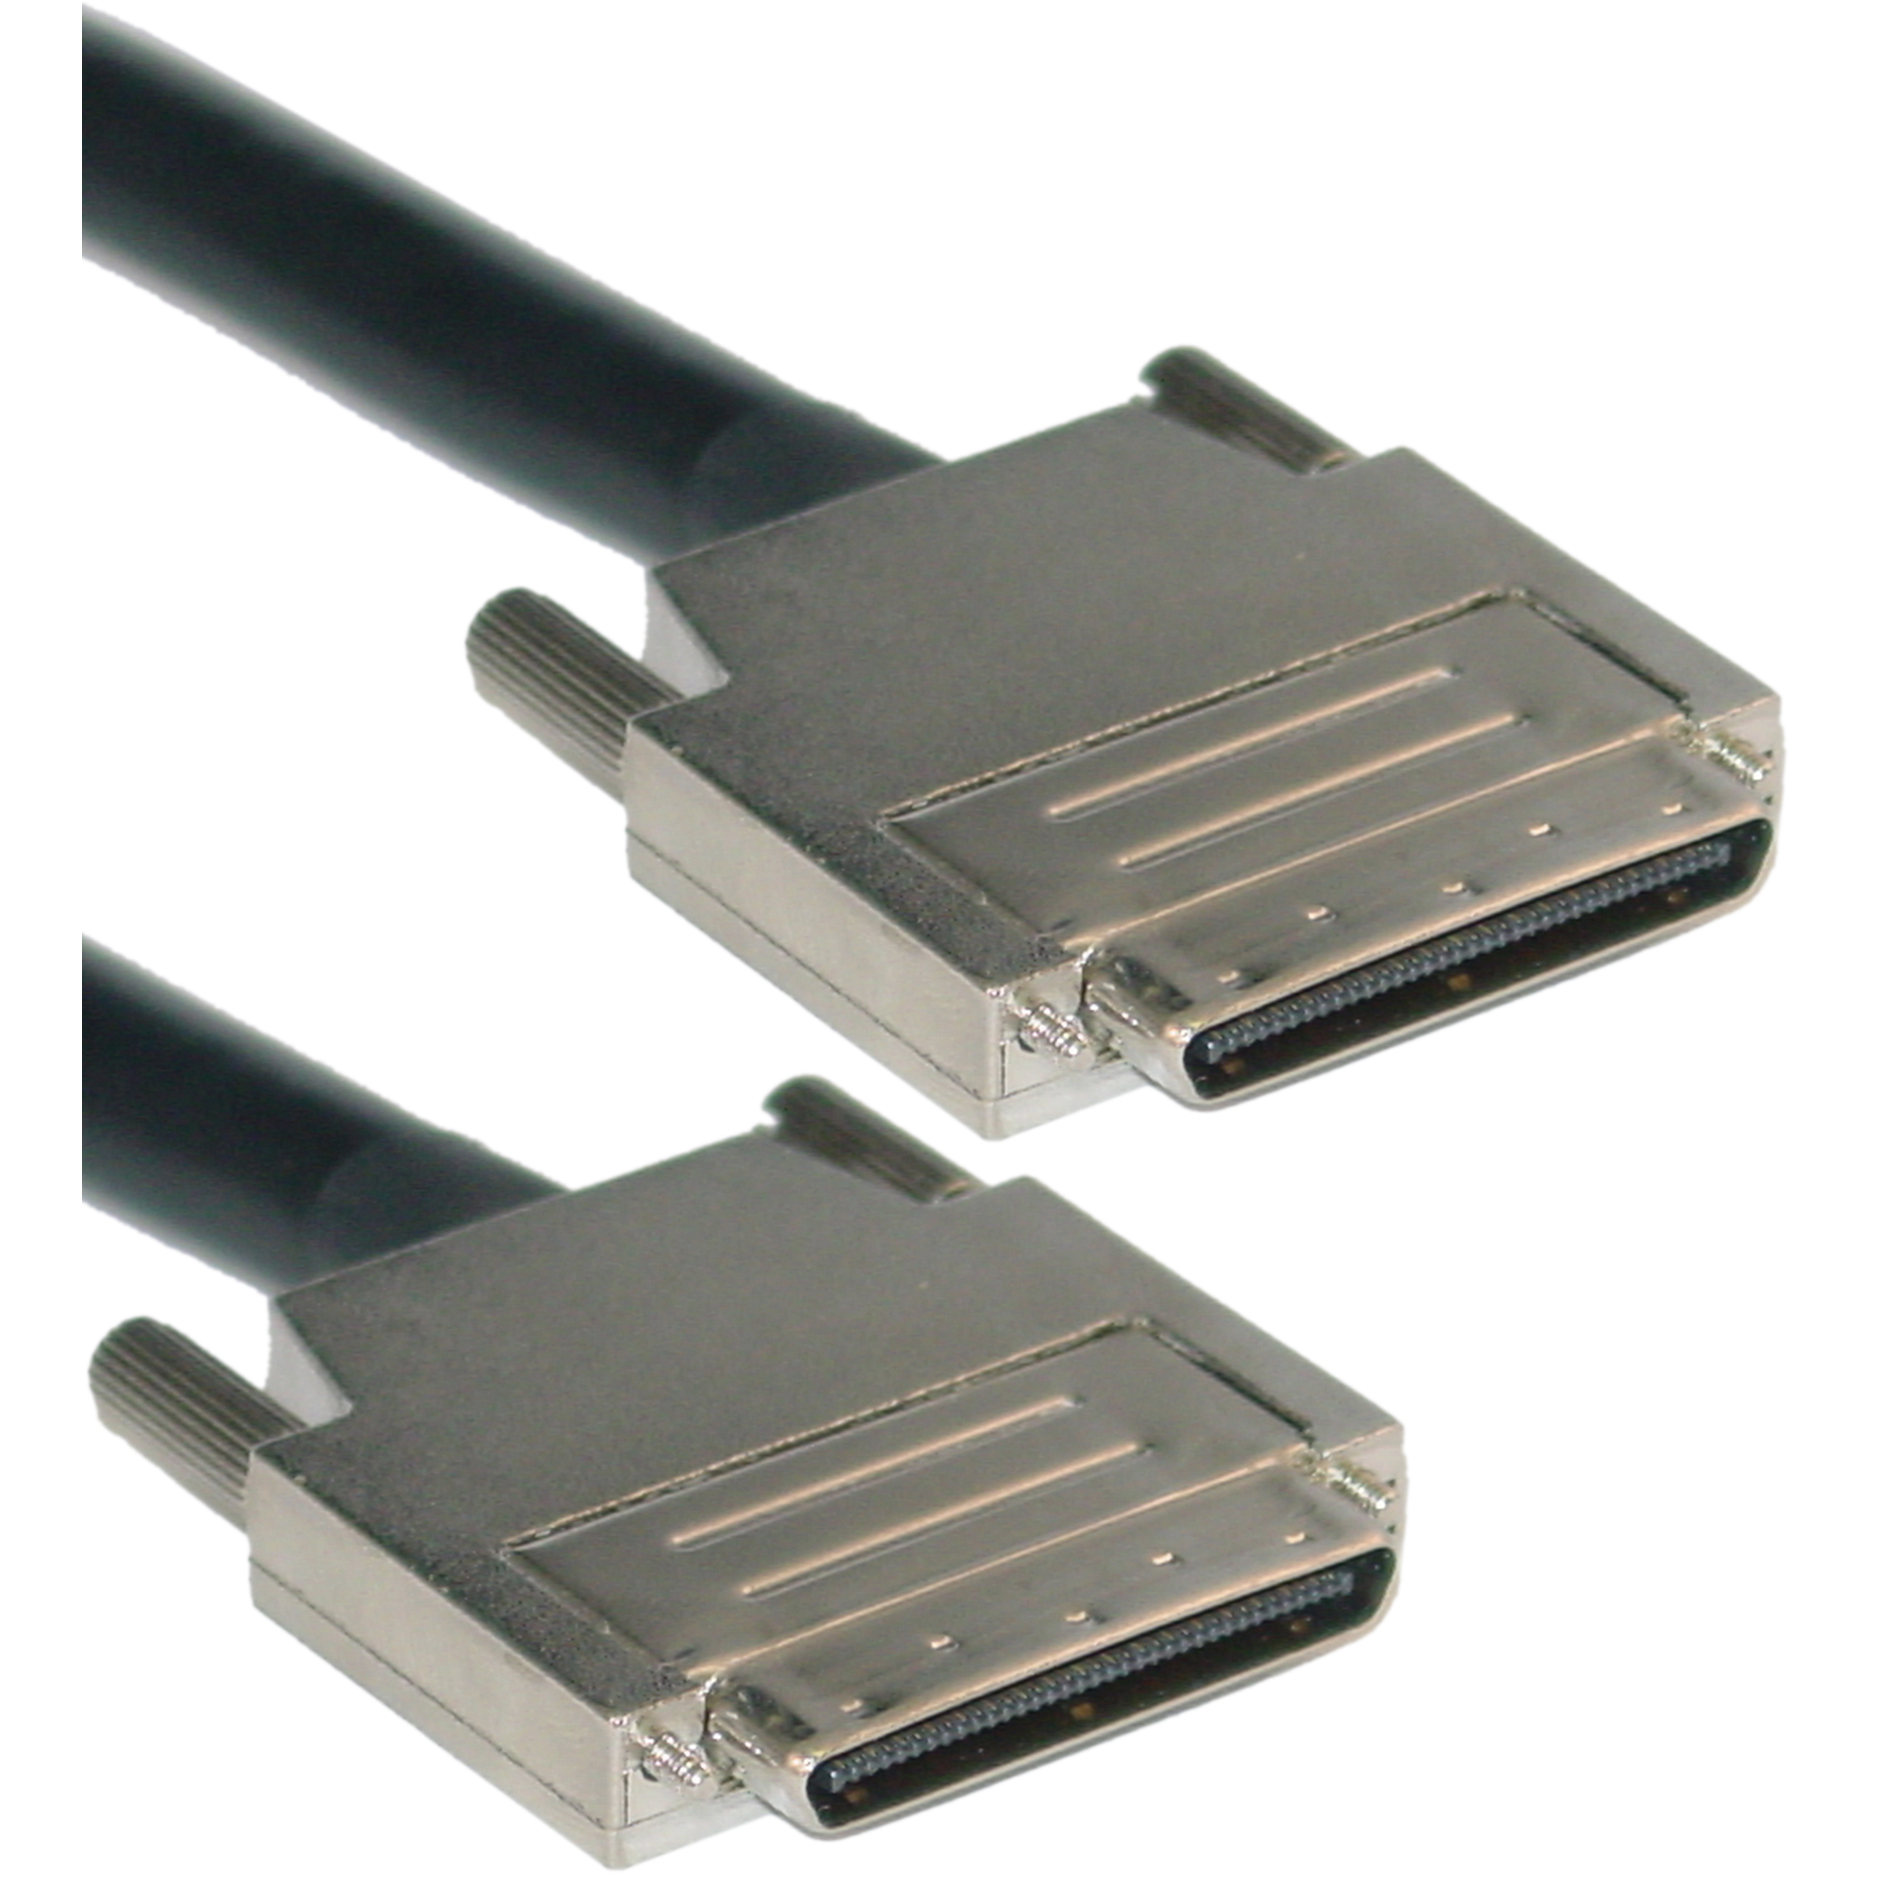 6ft Scsi Iii Cable Vhdci 68 Male 34 Twisted Pairs